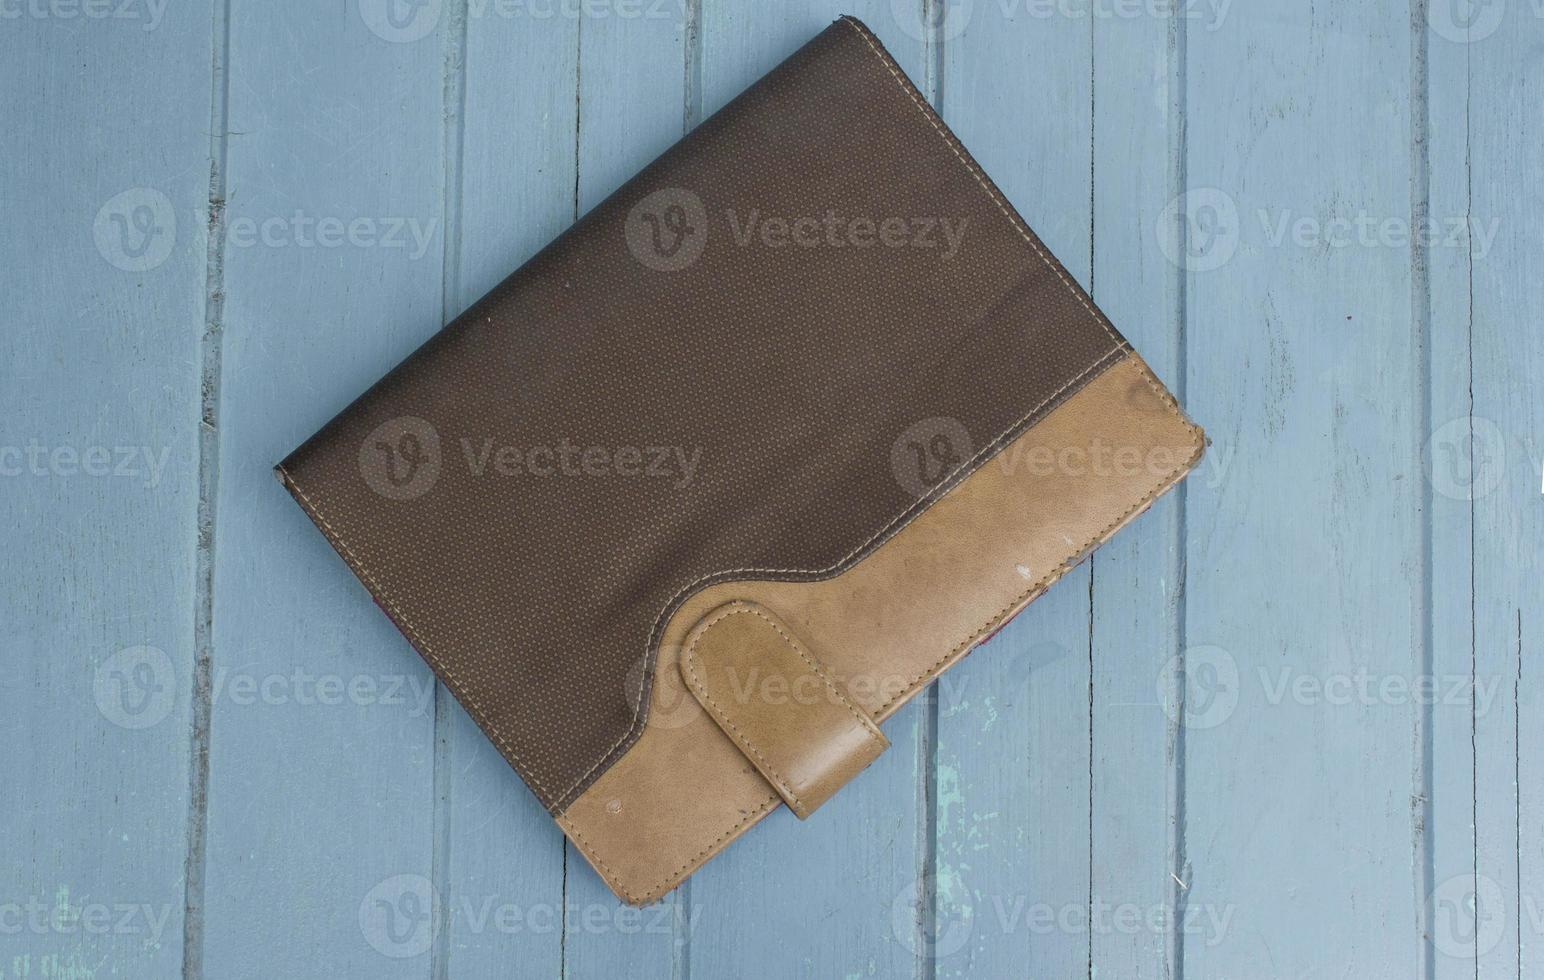 hardcover book on wood background photo